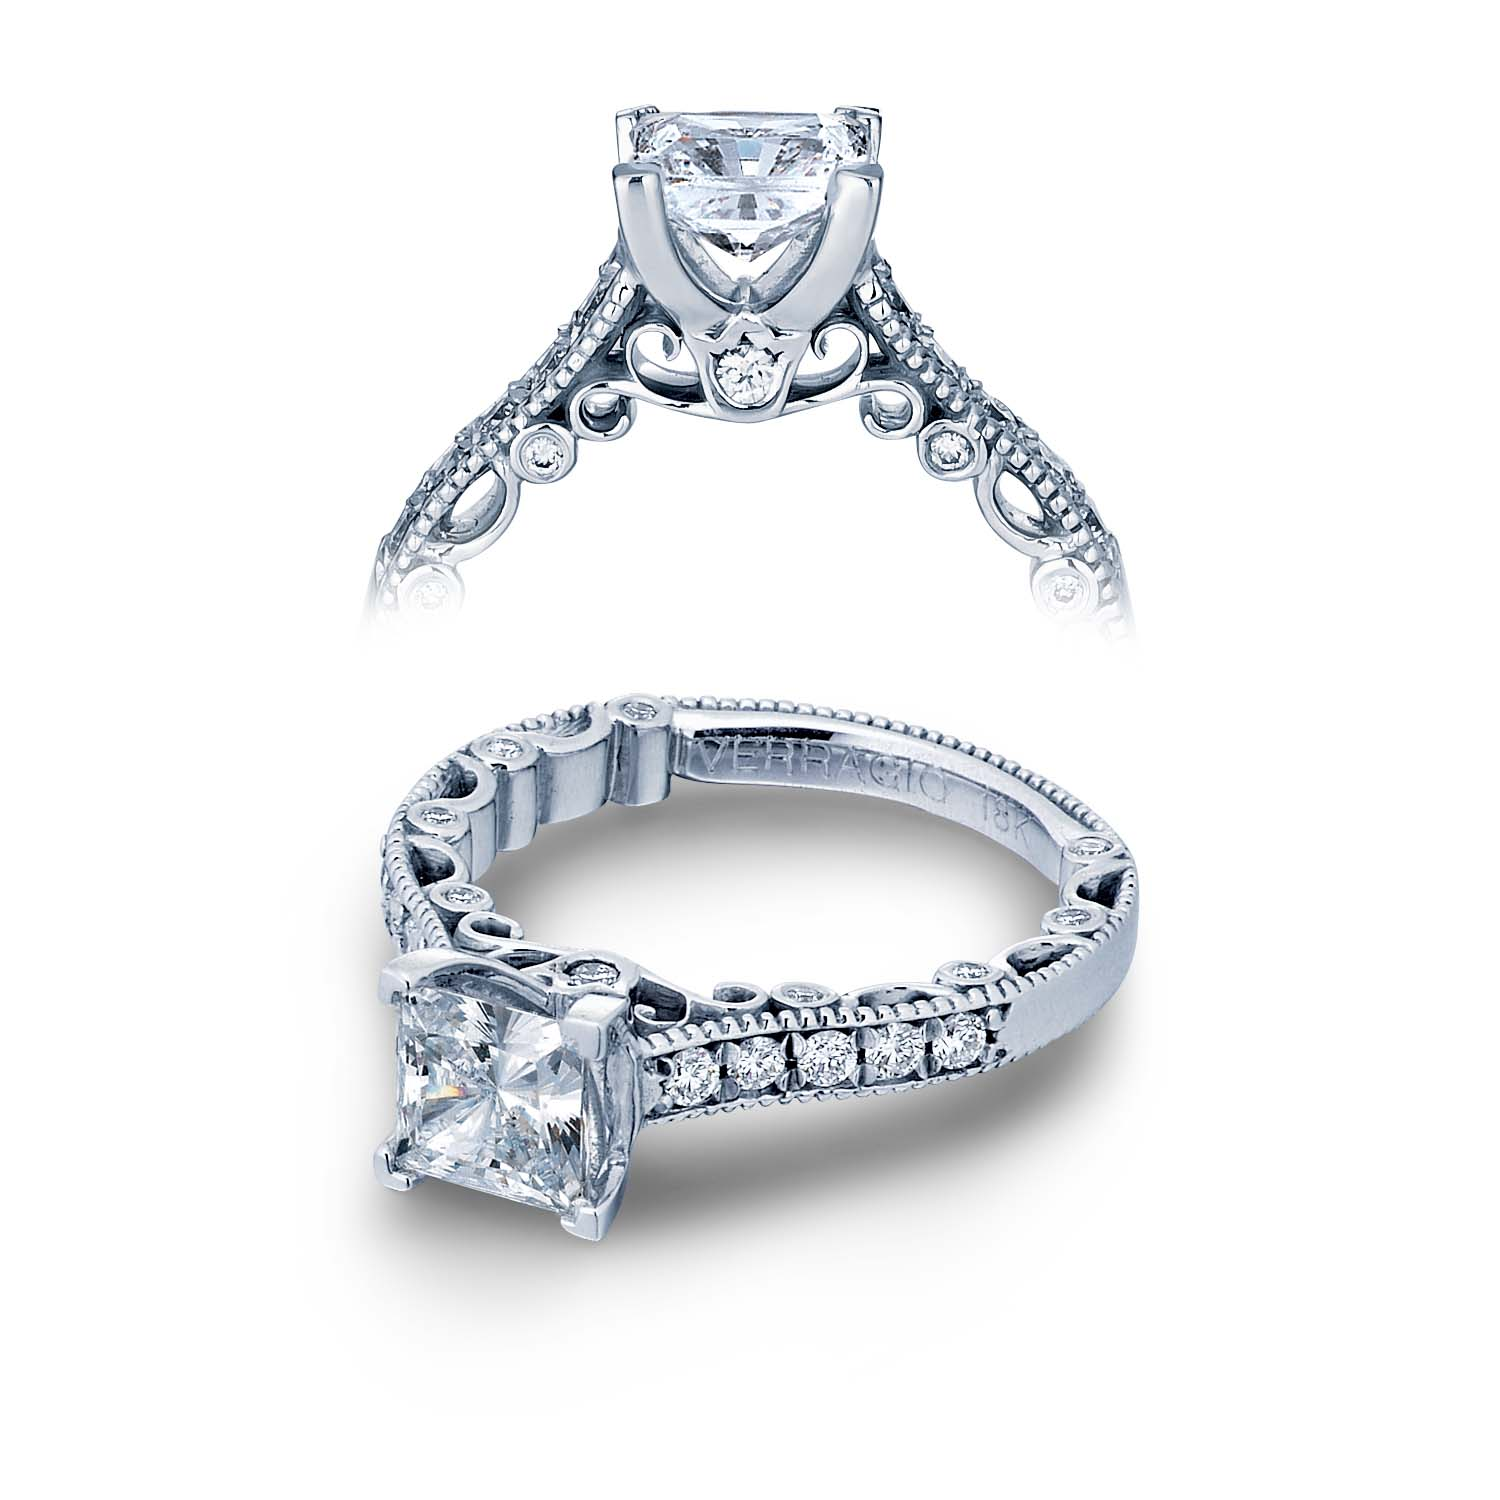 Verragio Celebrates Reaching 700K Fans On Facebook With